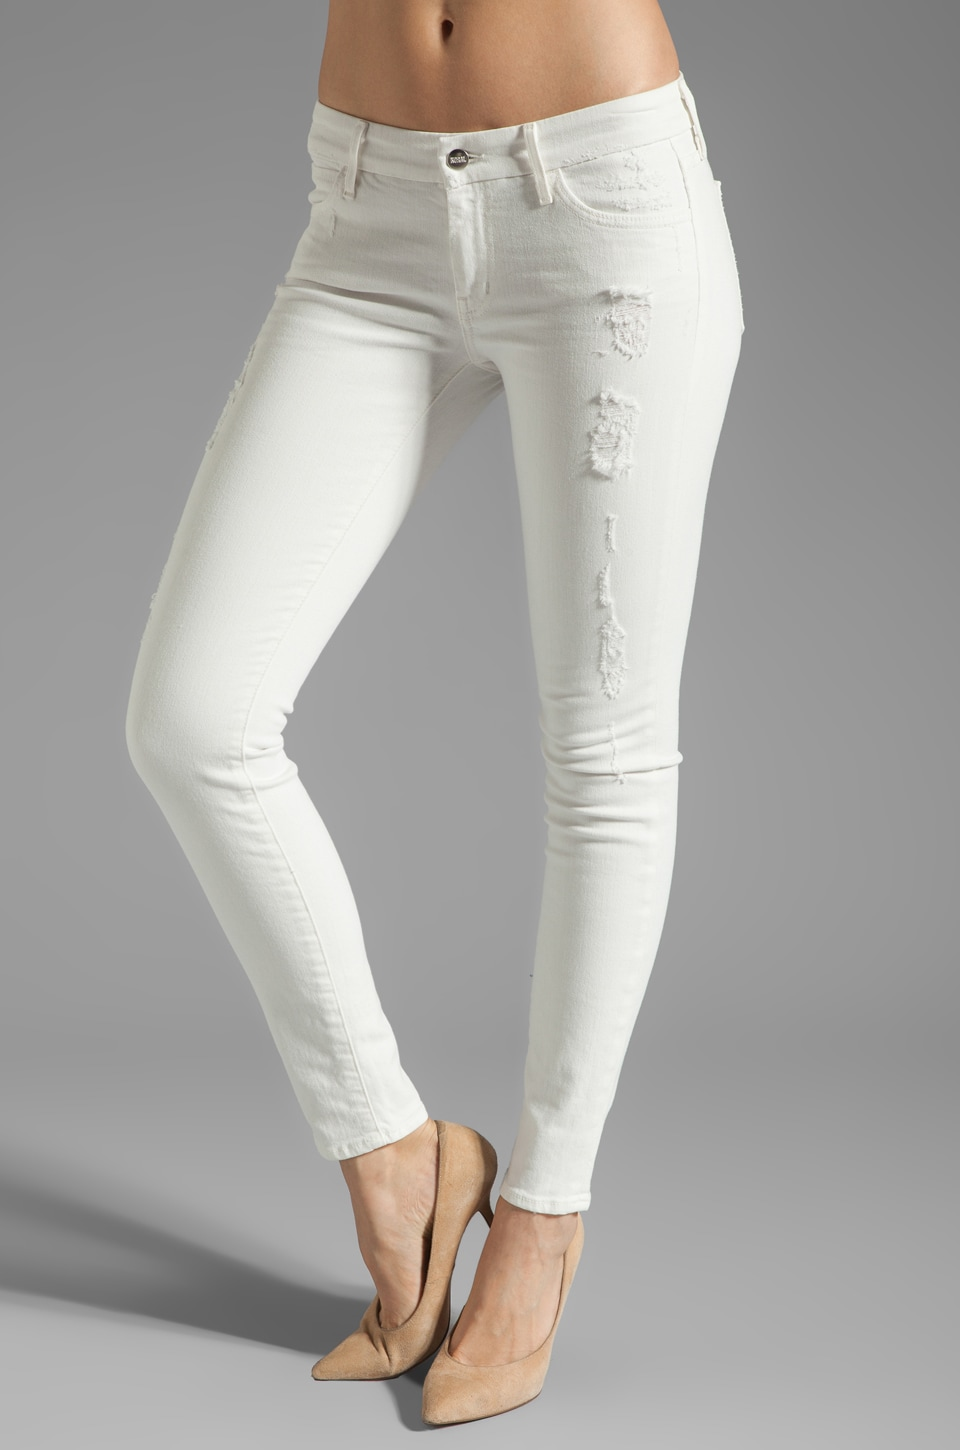 Koral Denim Japanese Denim Skinny in Destroyed White